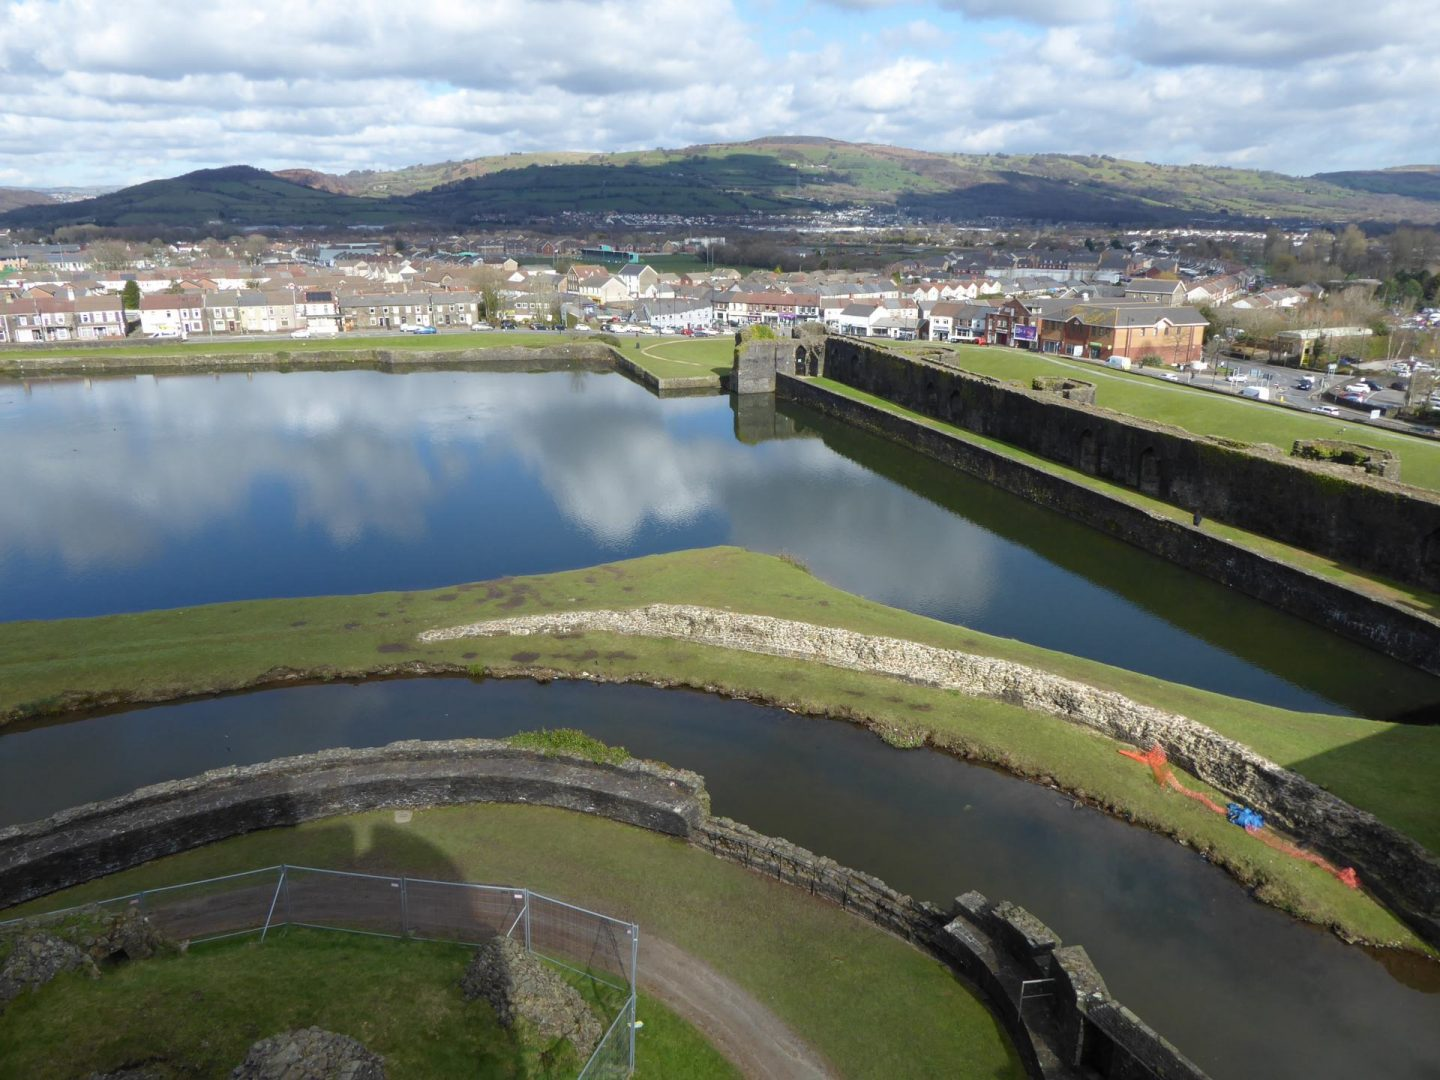 Looking towards the hills north of hills north of Caerphilly, over the castle's man made lake